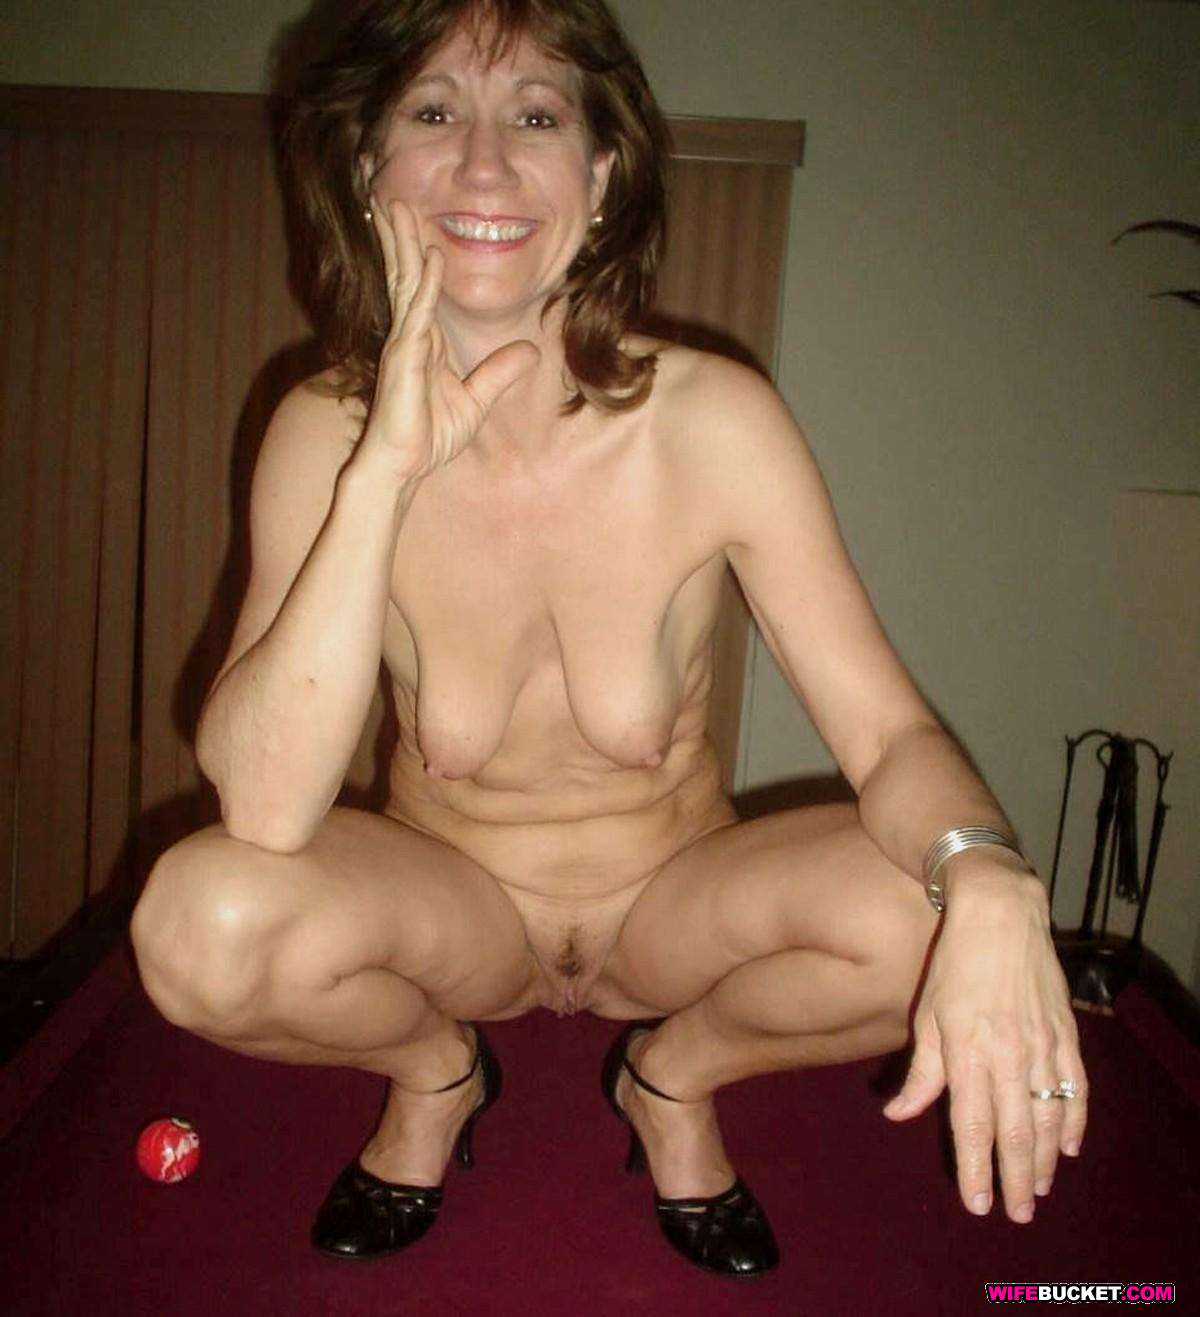 Same... Flat chested amateur wife phrase... super